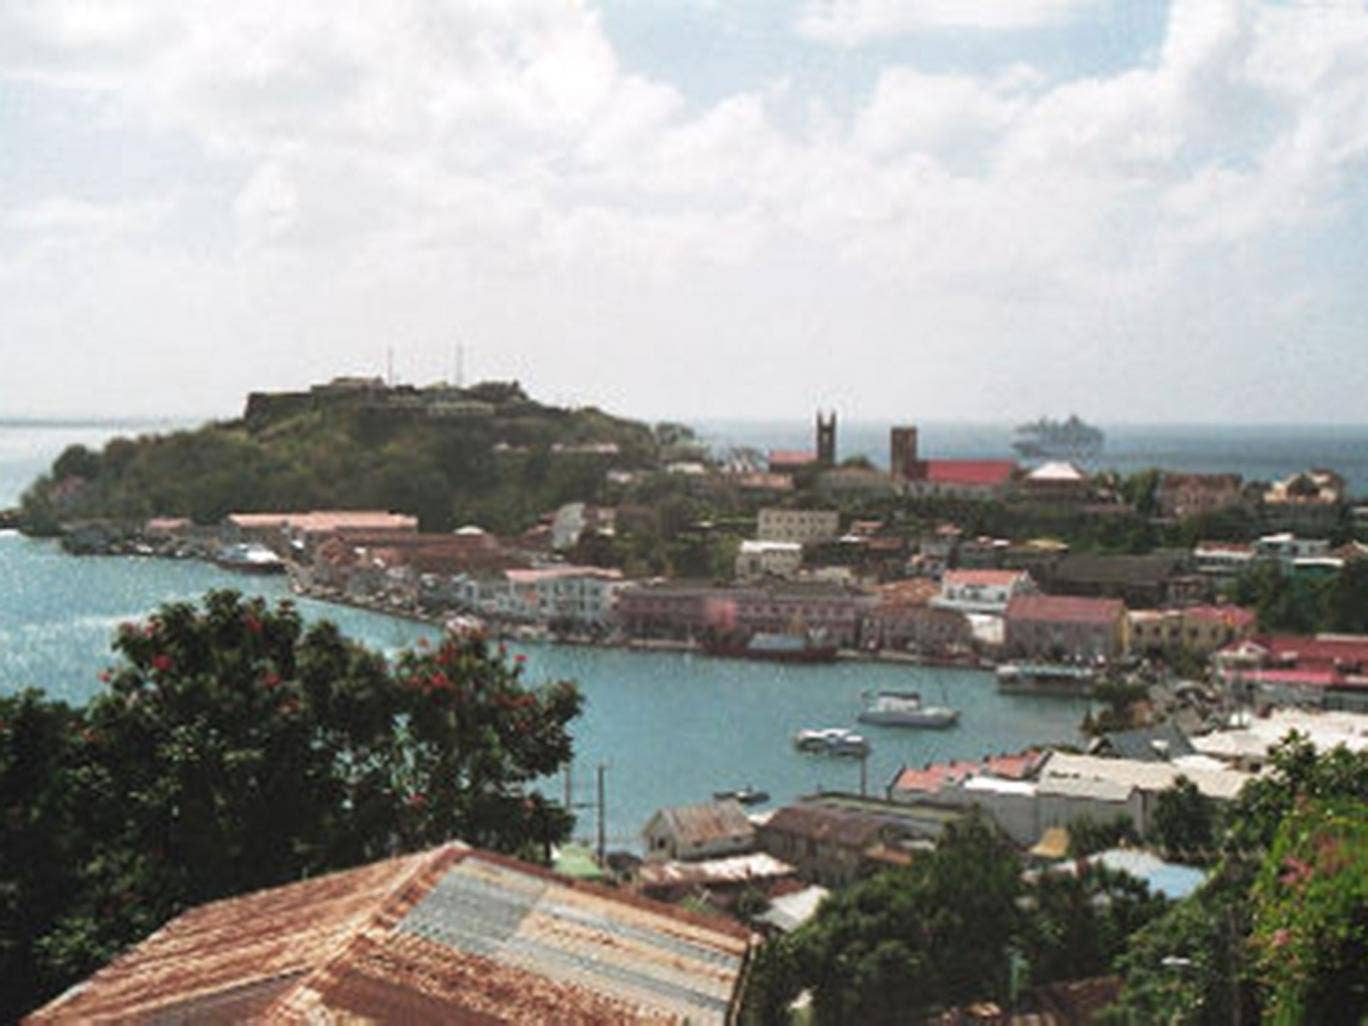 A British man has been arrested by police in the Caribbean over the death of his wife, after her body was found in a shallow grave on Grenada.